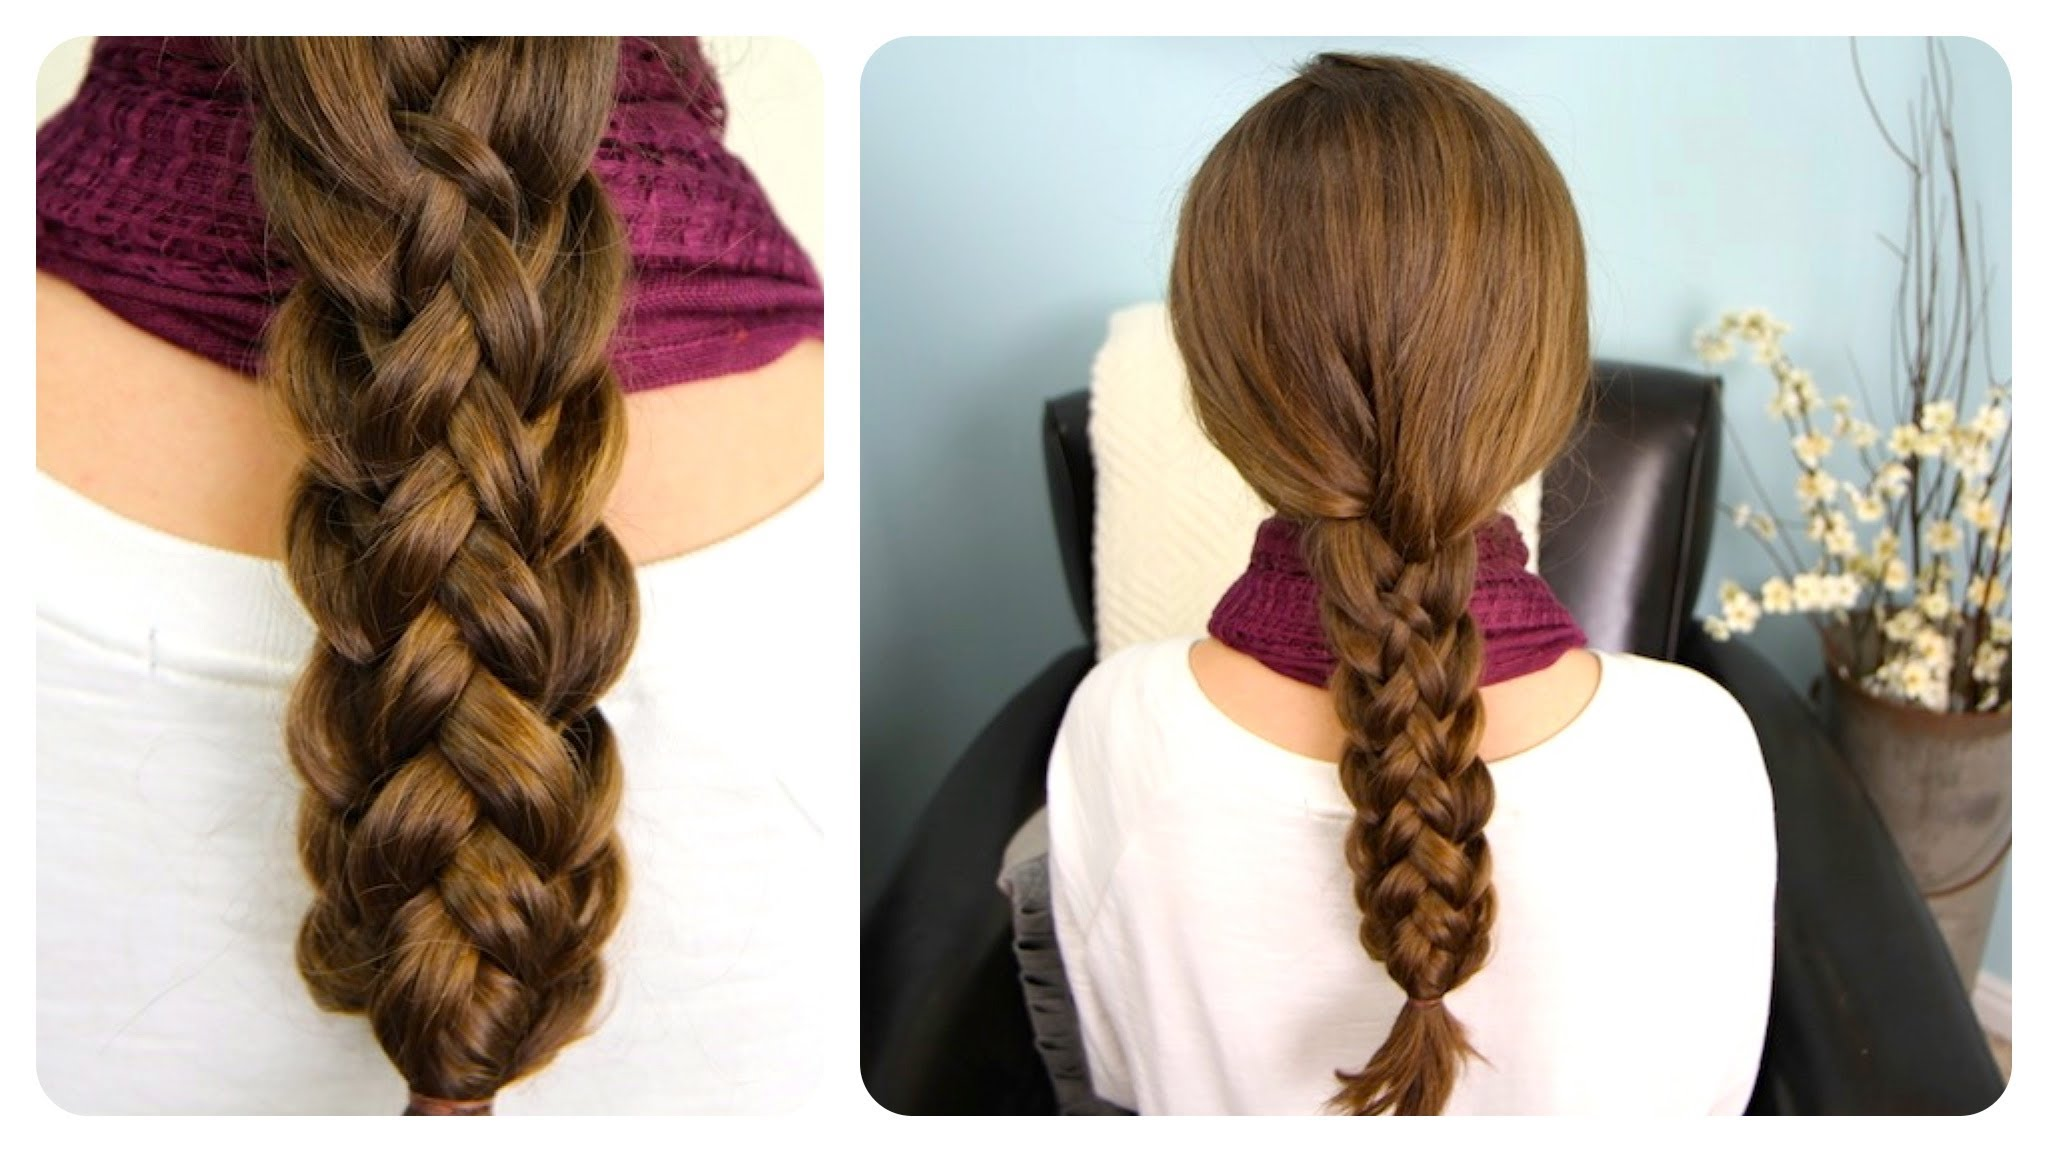 How to do cute stacked braids hairstyles for long hair DIY tutorial